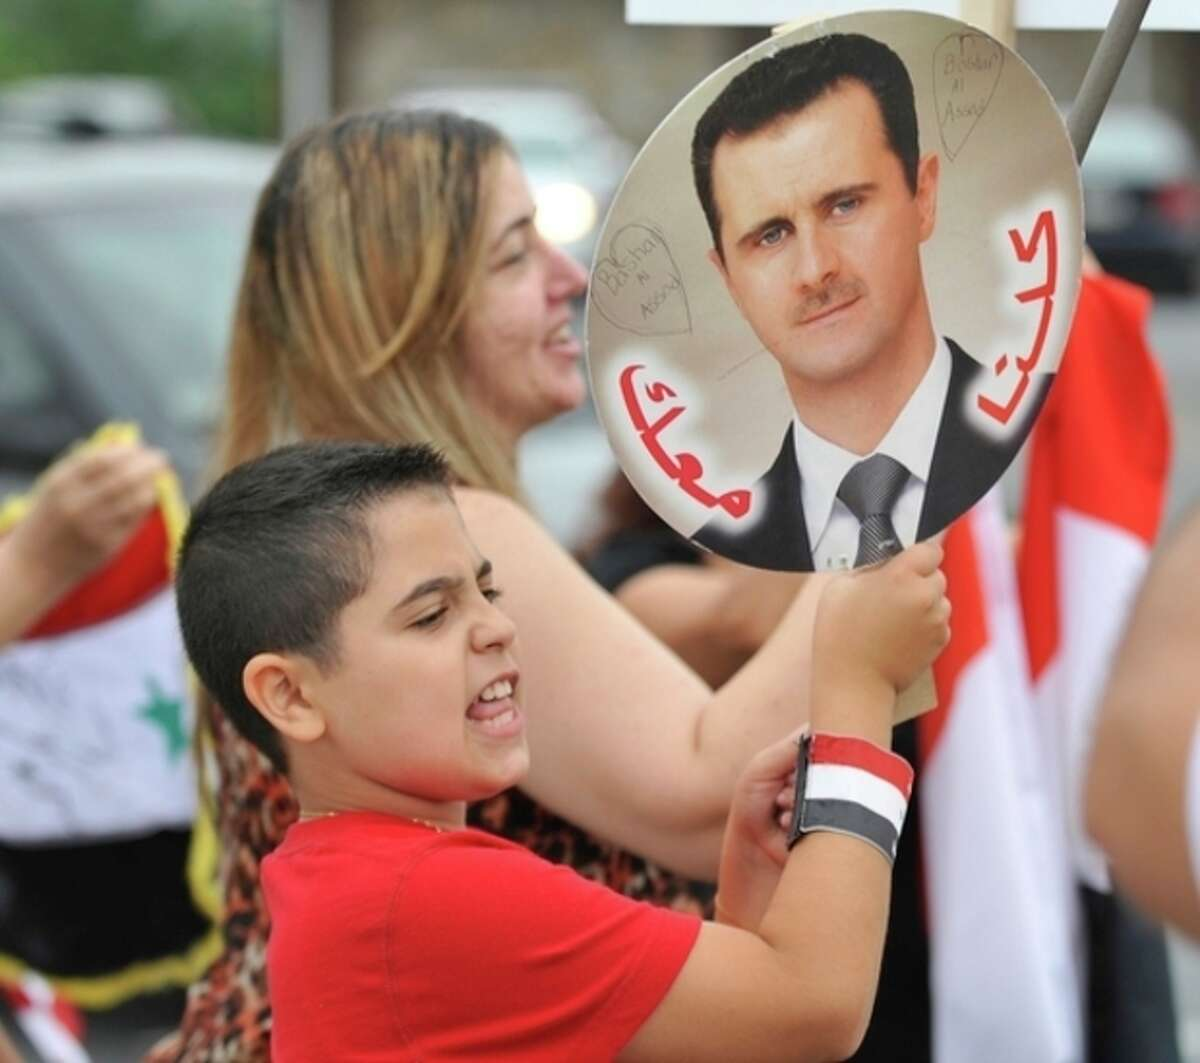 Members of the local Syrian community rally for the second day in a row against the United States' involvement in Syria, Wednesday, Aug. 28, 2013 in Allentown, Pa. President Barack Obama on Wednesday declared unequivocally that the United States has